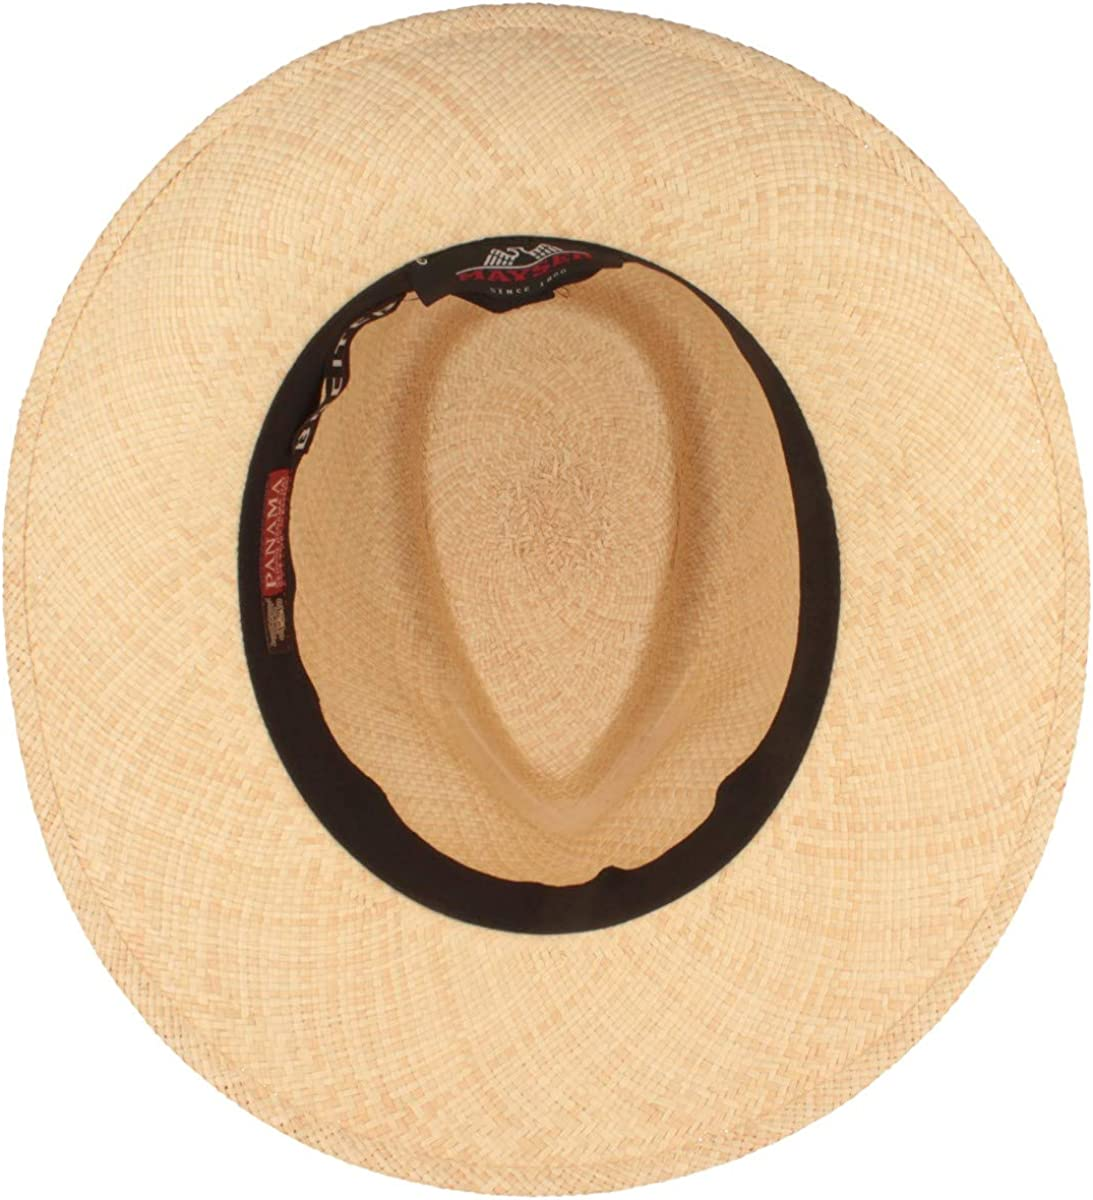 Straw Hat Soft Sweatband and Crack Protection. Water Repellant UV 40 Sun Protection Traditional Hand Woven in Ecuador Original Panama Hat Summer Hut